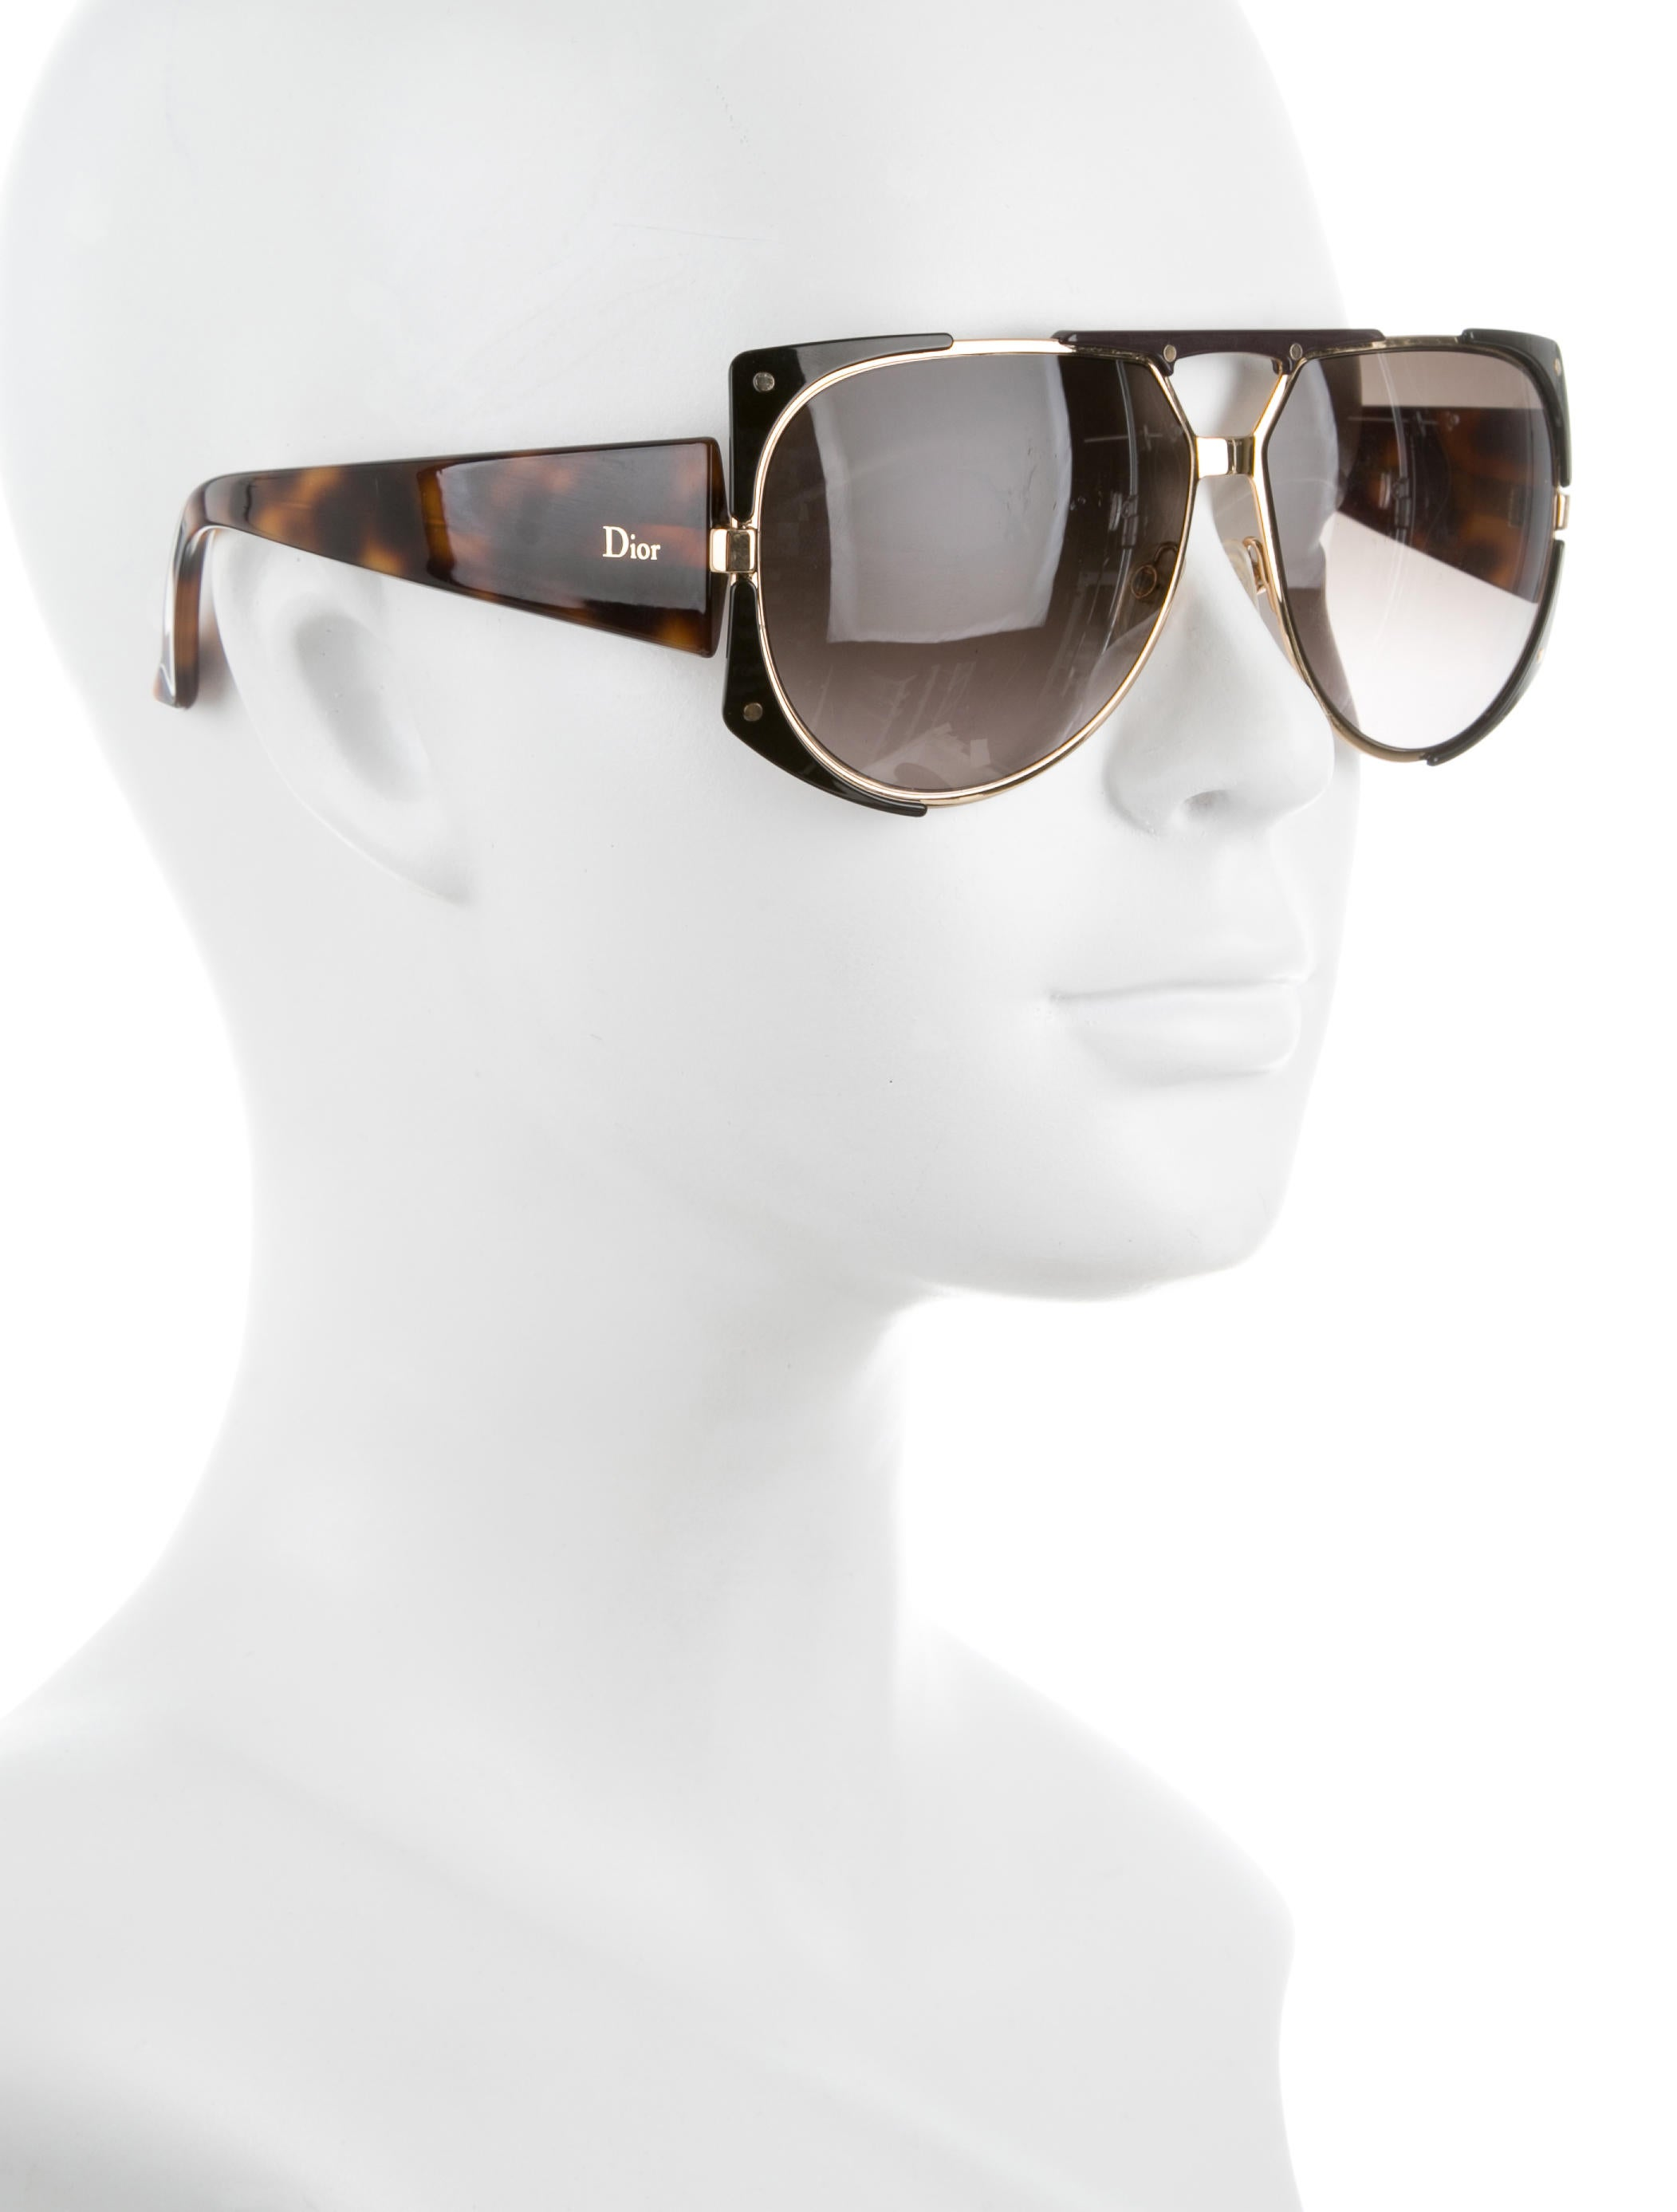 c6fb5f11eeb Dior Aviator Sunglasses Brown. Christian Dior Tortoiseshell Aviator  Sunglasses - Accessories ...